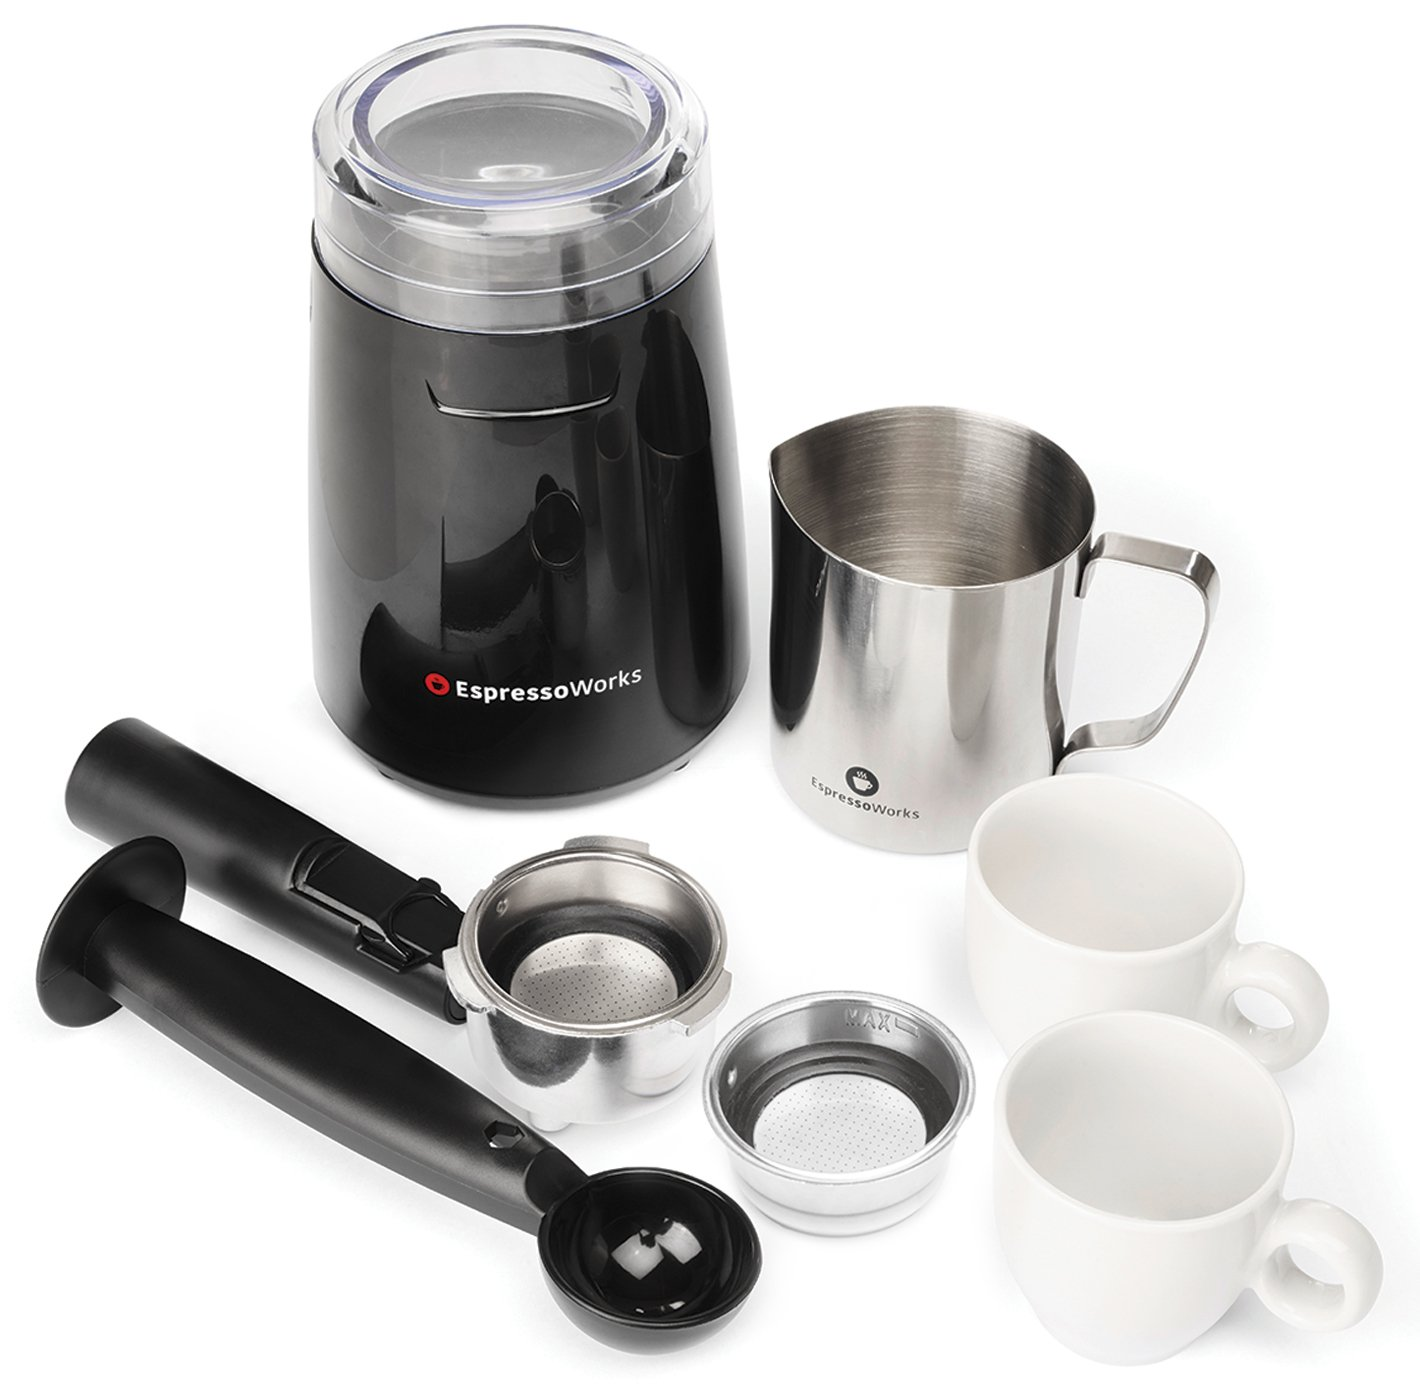 7 Pc All-In-One Espresso/Cappuccino Machine Bundle Set- (Includes: Electric Coffee Bean Grinder, Portafilter, Stainless Steel Frothing Cup, Measuring Spoon w/ Tamper & 2 Espresso Cups), Silver/Black by EspressoWorks (Image #3)